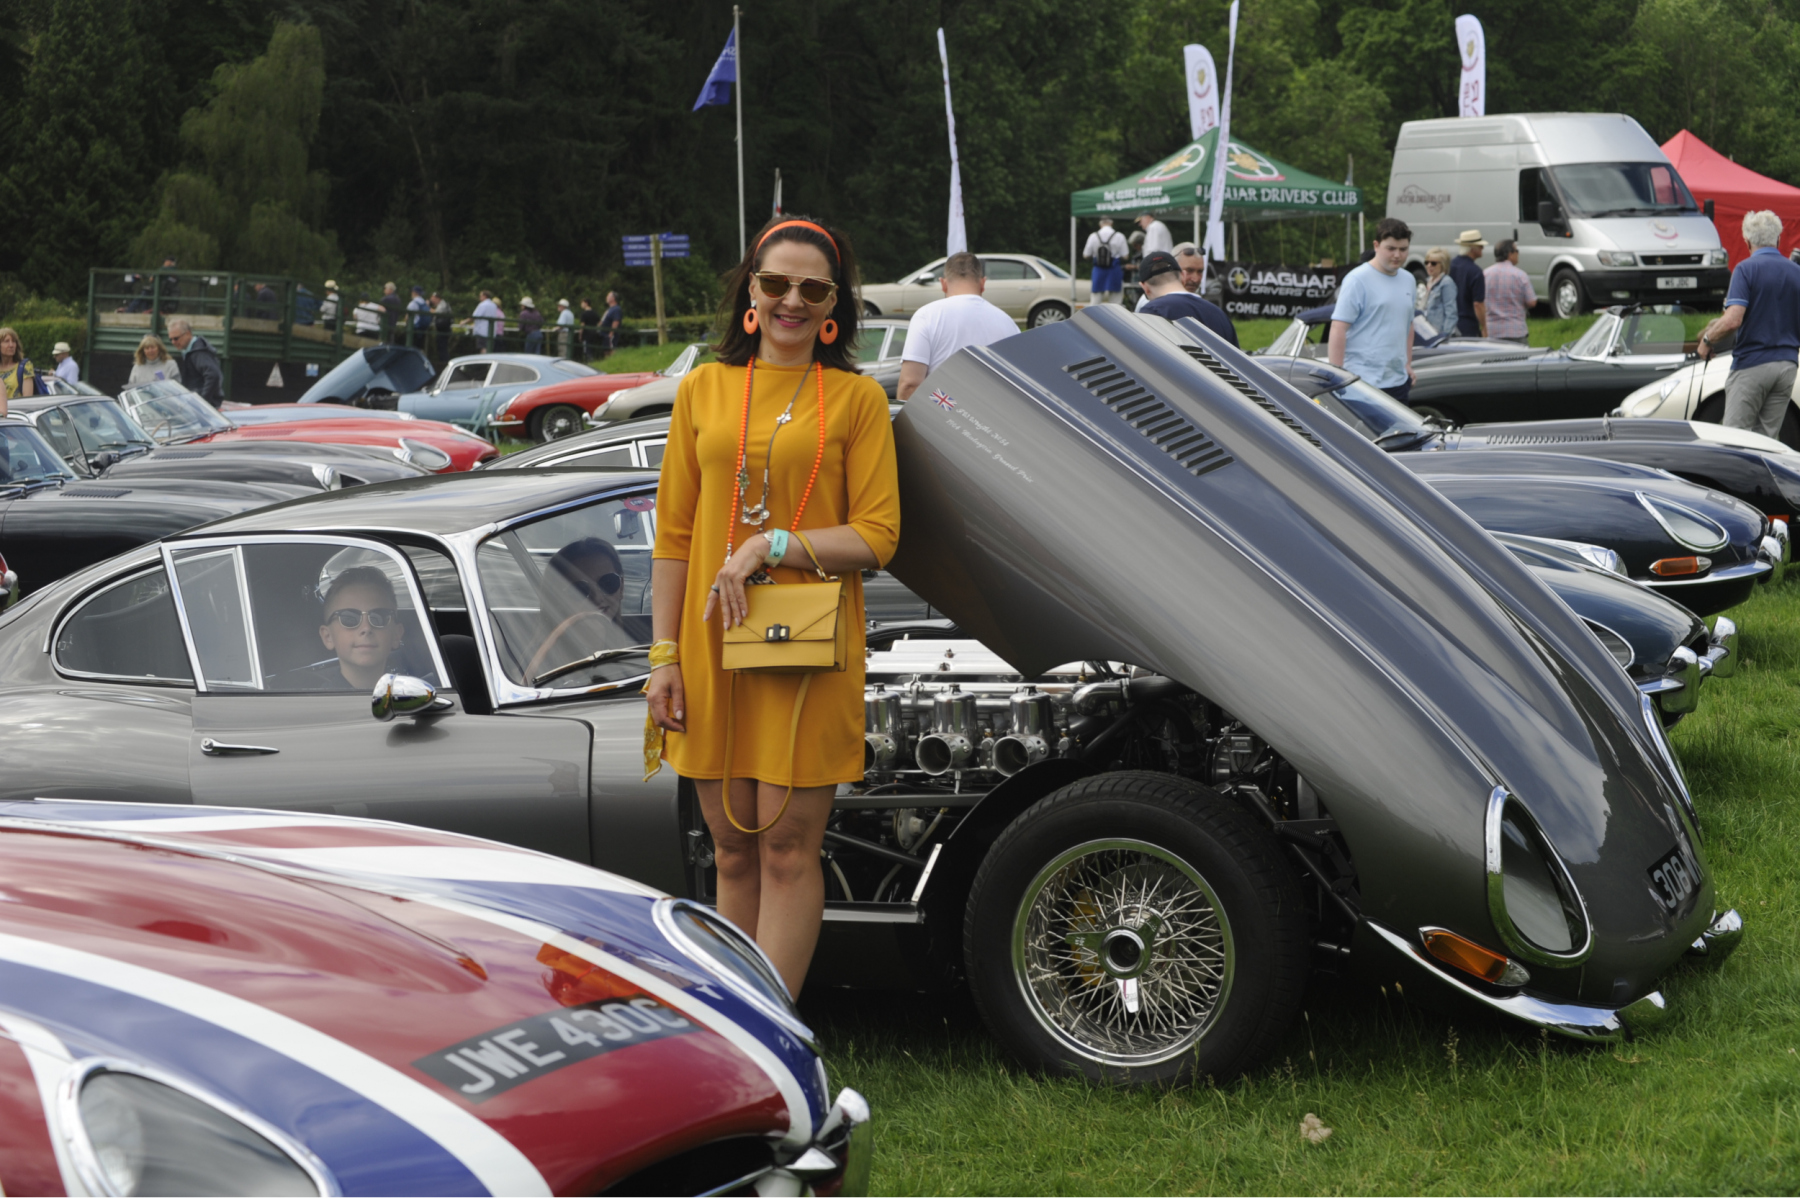 E-type-60-Saturday-photo-by-Abigail-Humphries-301